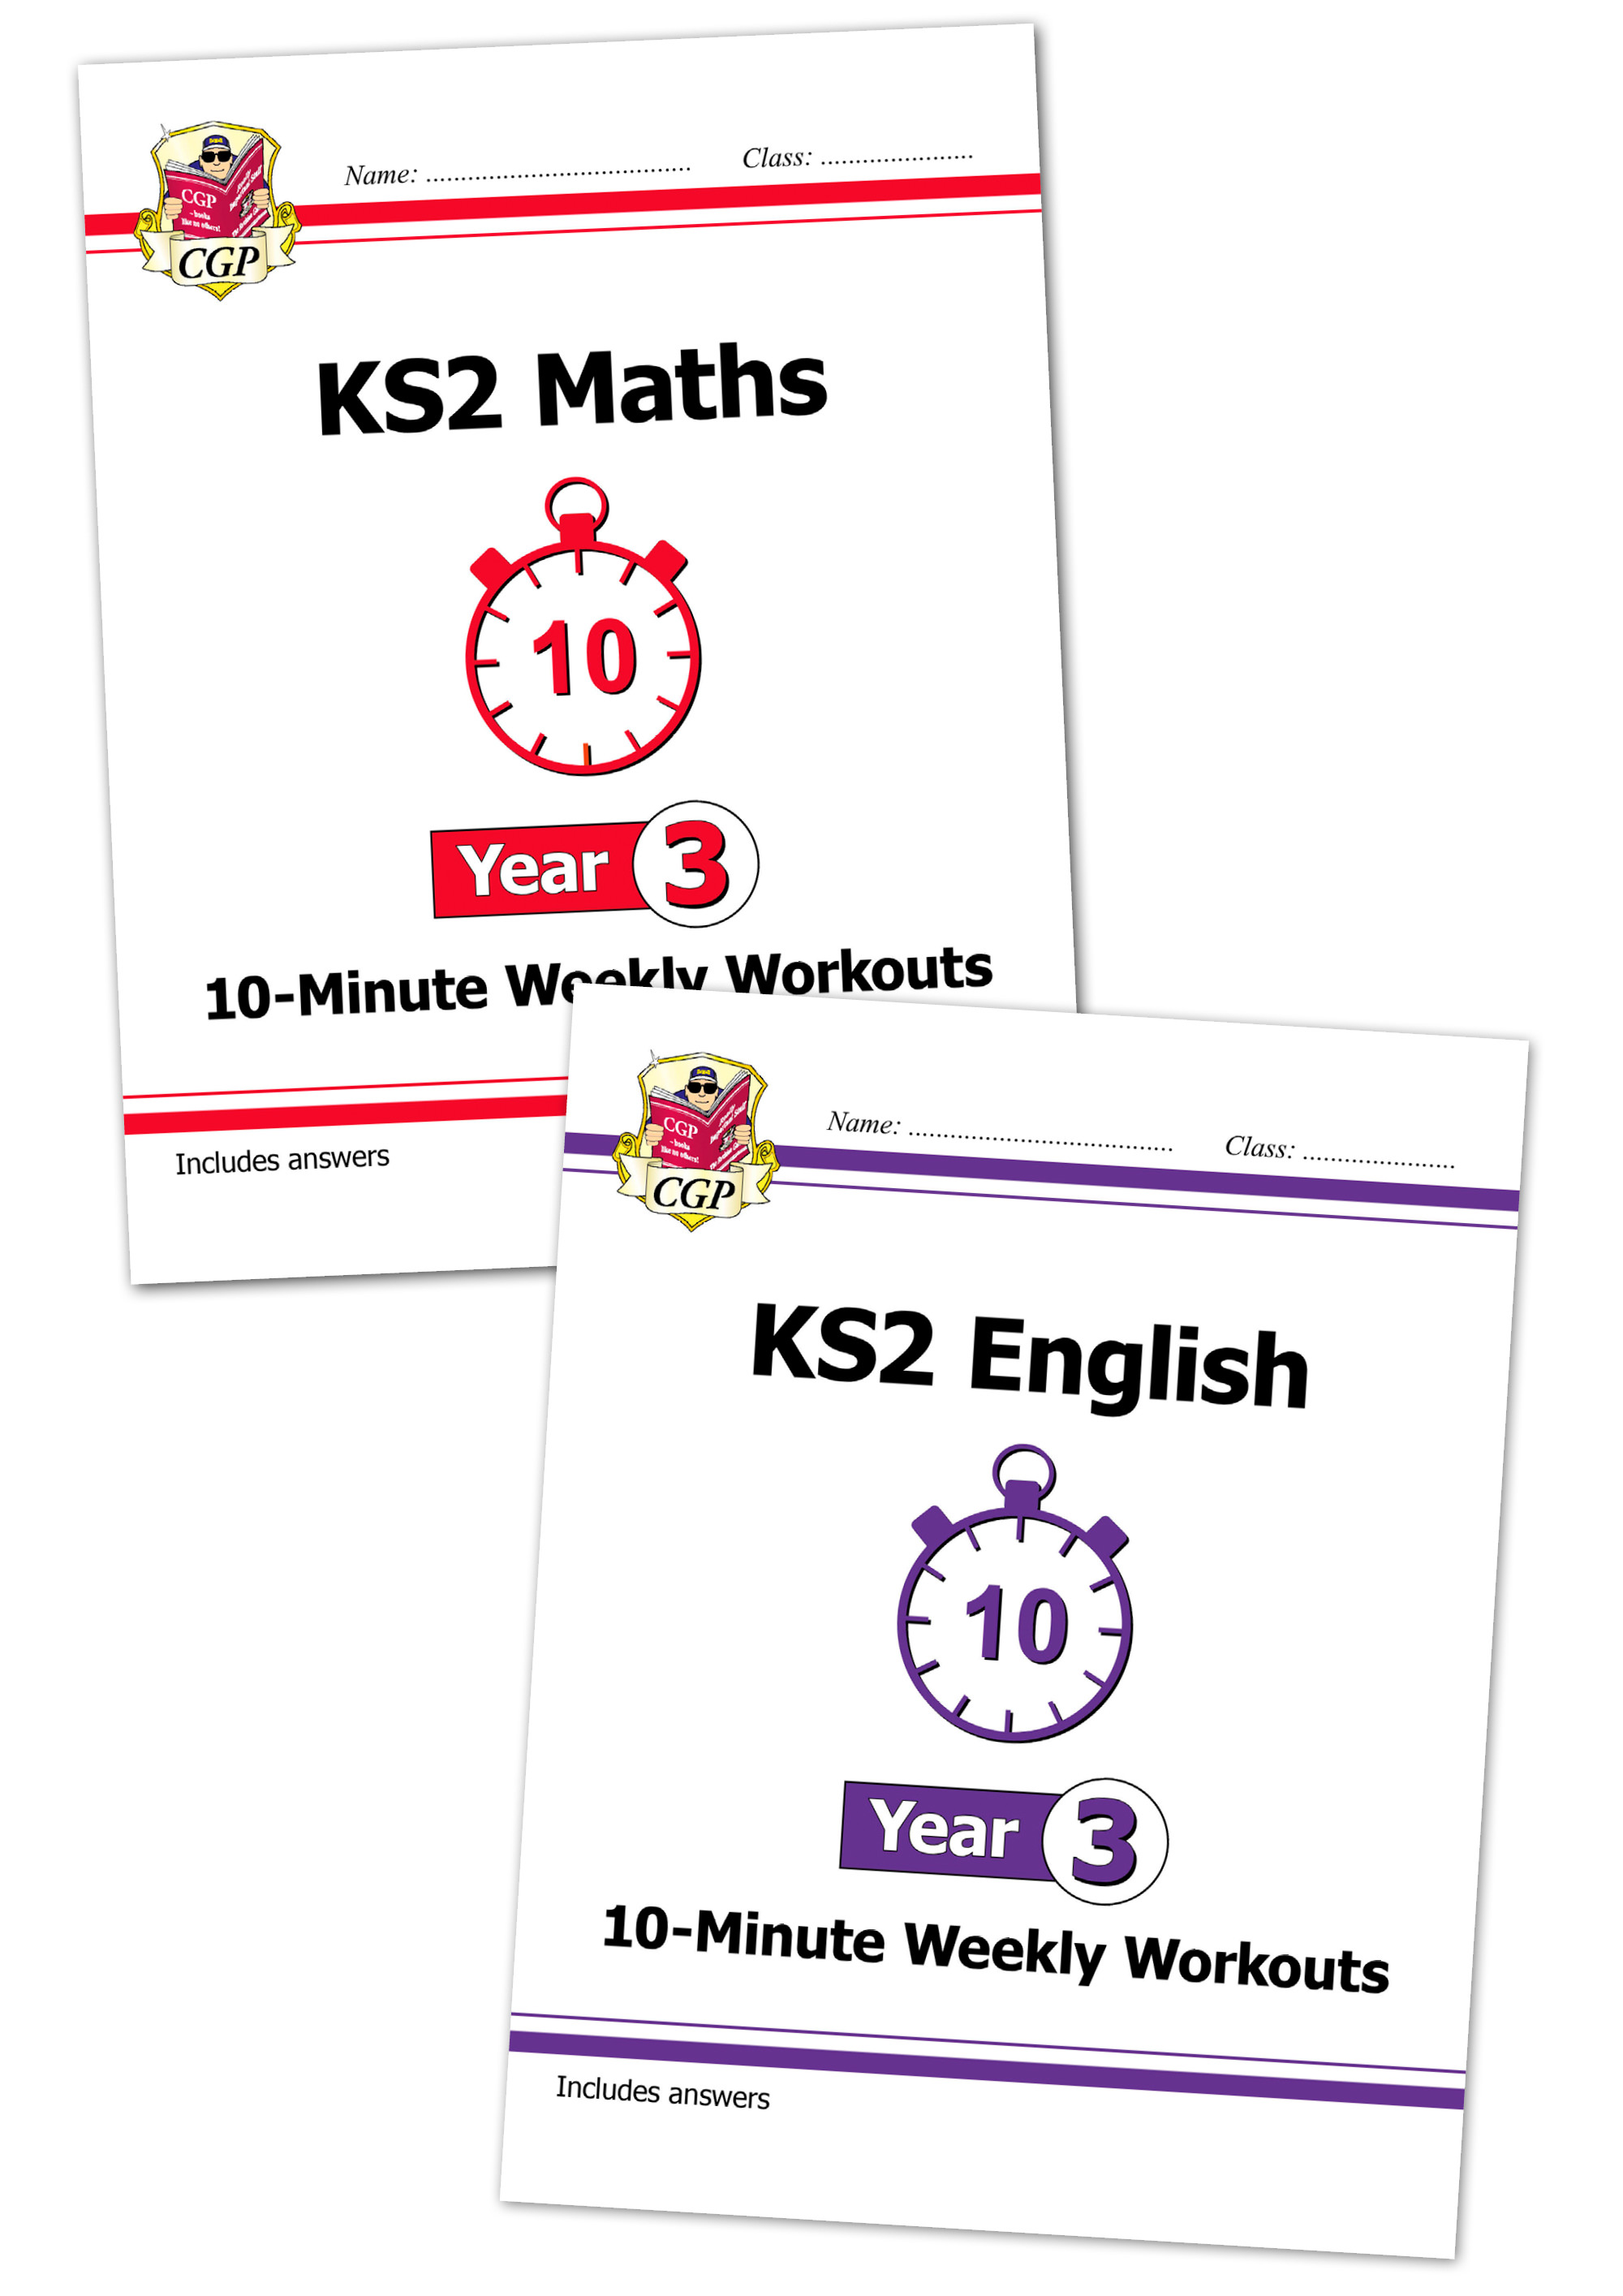 EM3XWB21 - New KS2 Maths and English 10-Minute Weekly Workouts Bundle - Year 3